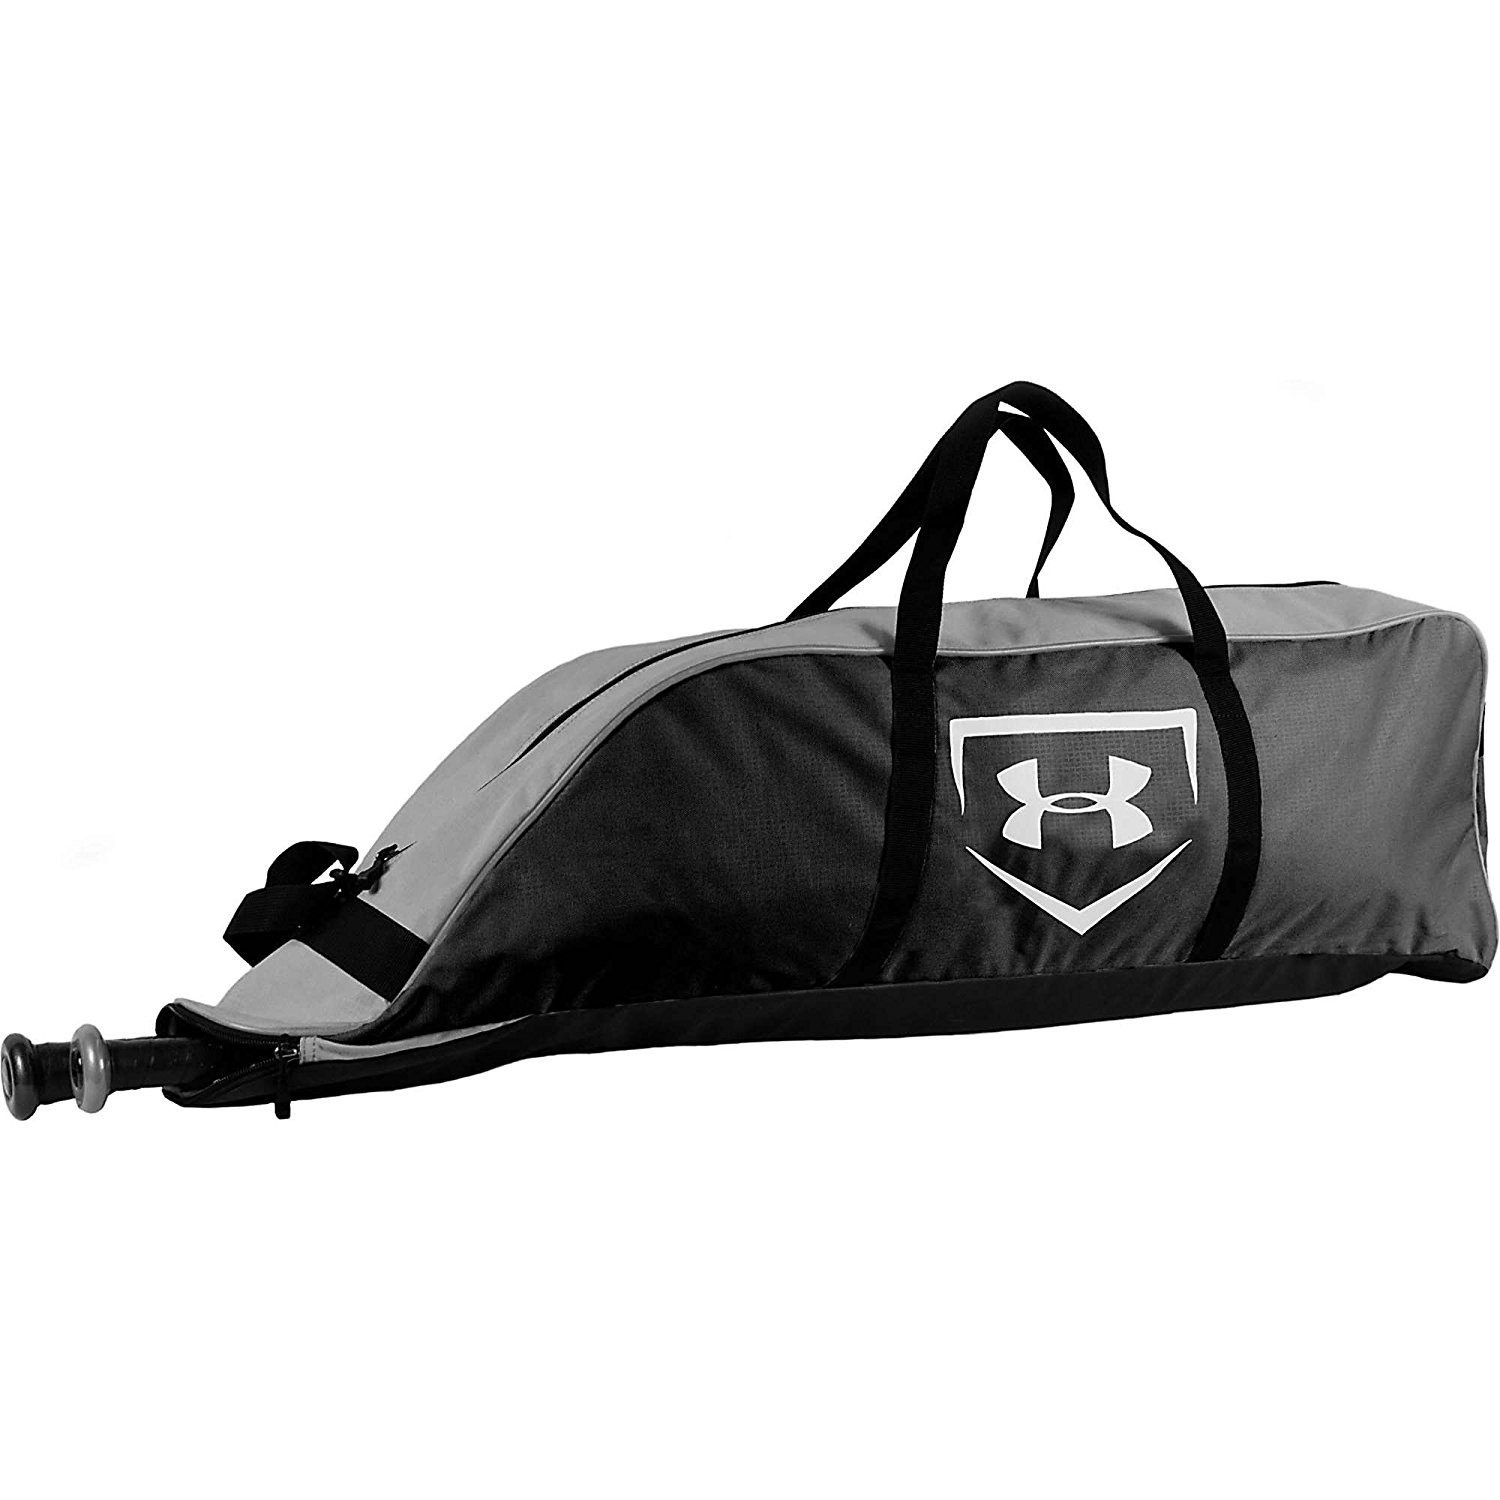 01ac5be88611 Get Quotations · Under Armour Bazooka Baseball Tote Bag